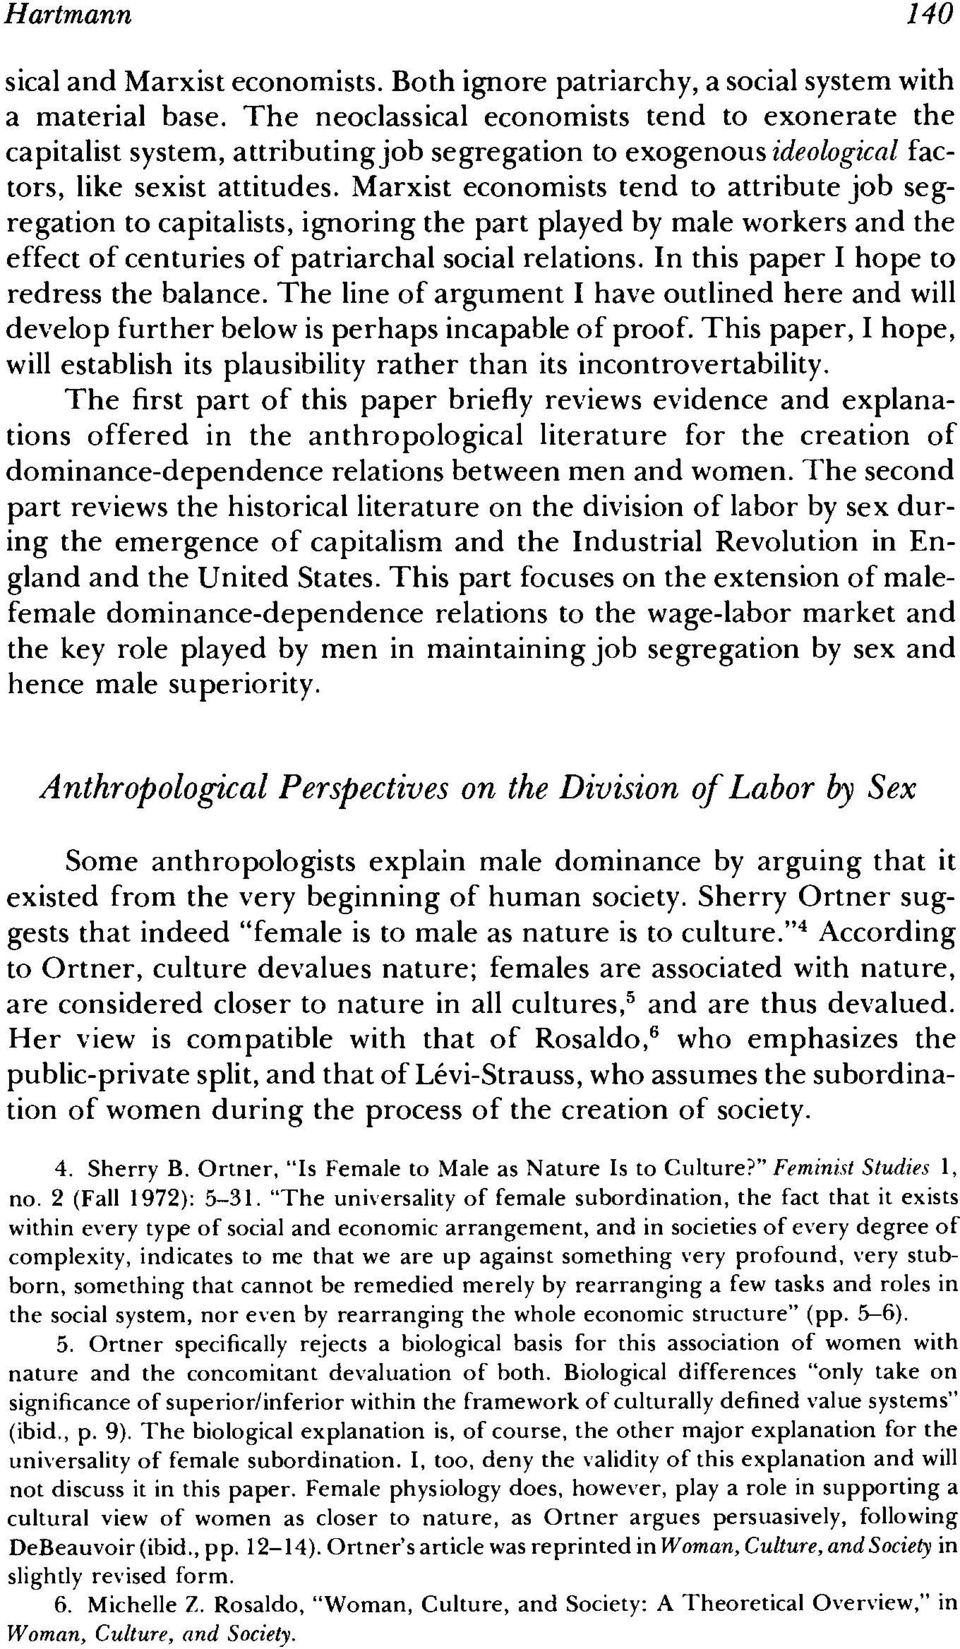 Marxist economists tend to attribute job segregation to capitalists, ignoring the part played by male workers and the effect of centuries of patriarchal social relations.